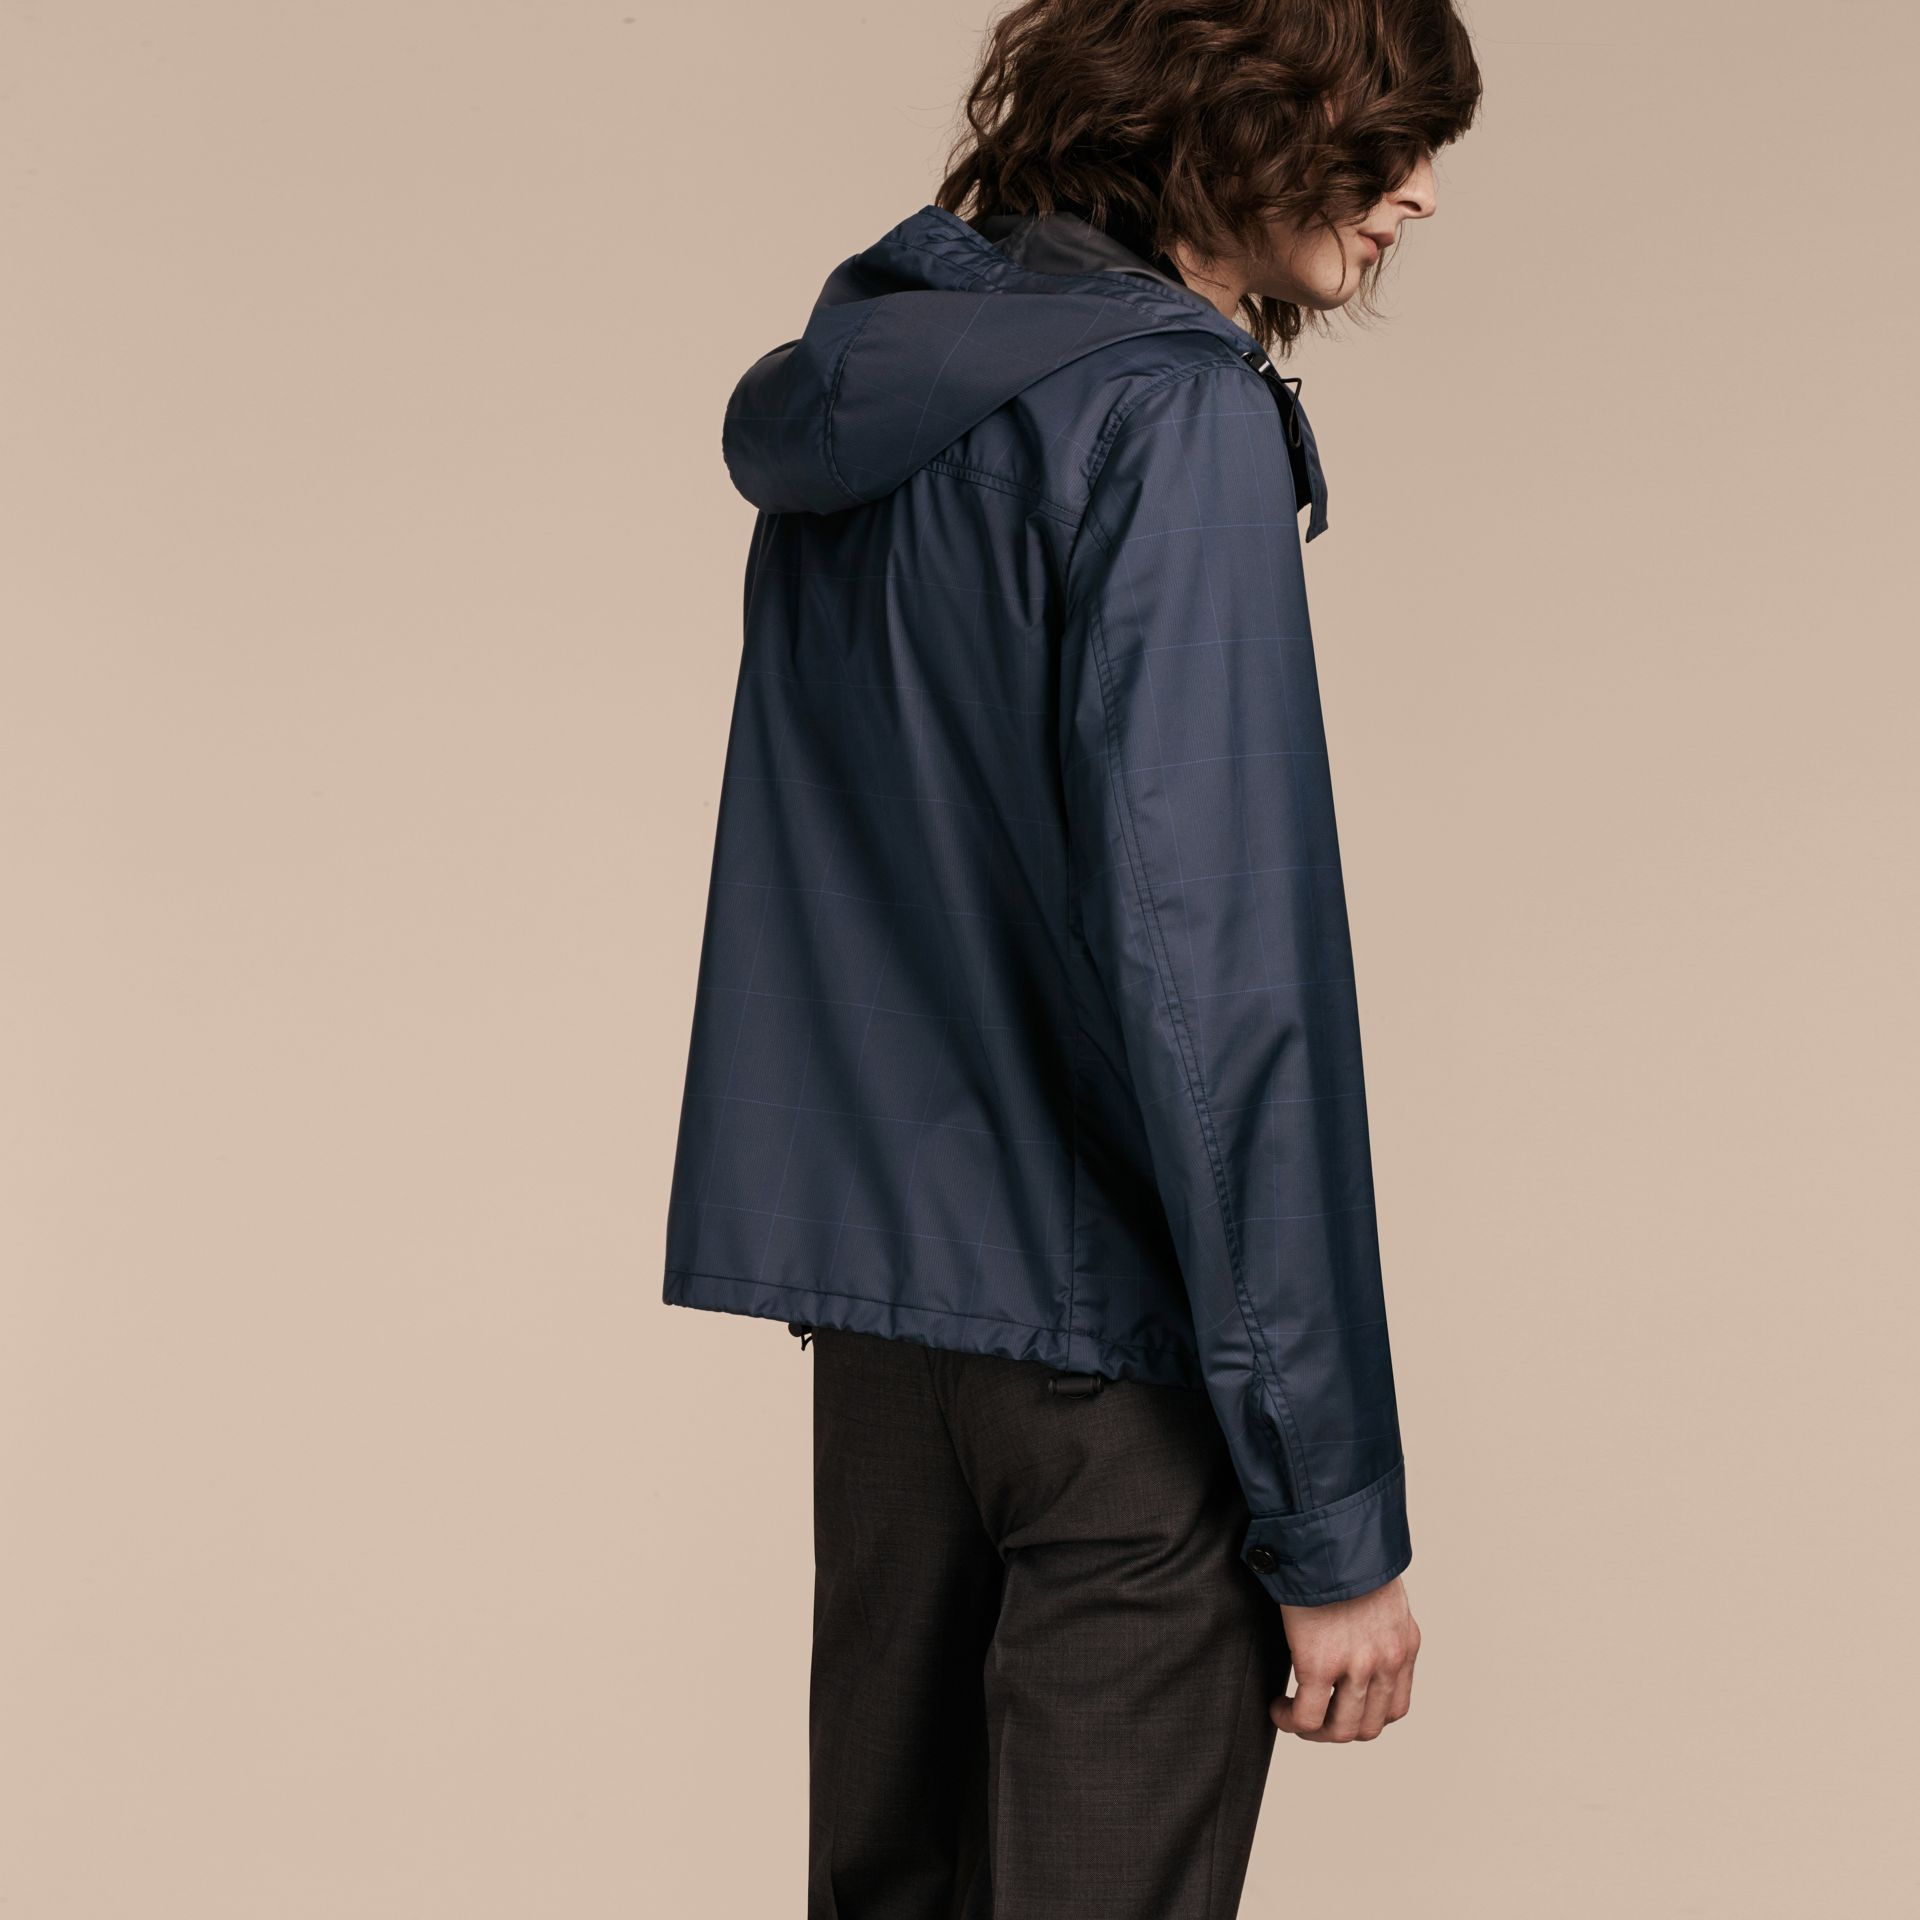 Navy Hooded Technical Jacket with Lambskin Trim - gallery image 3